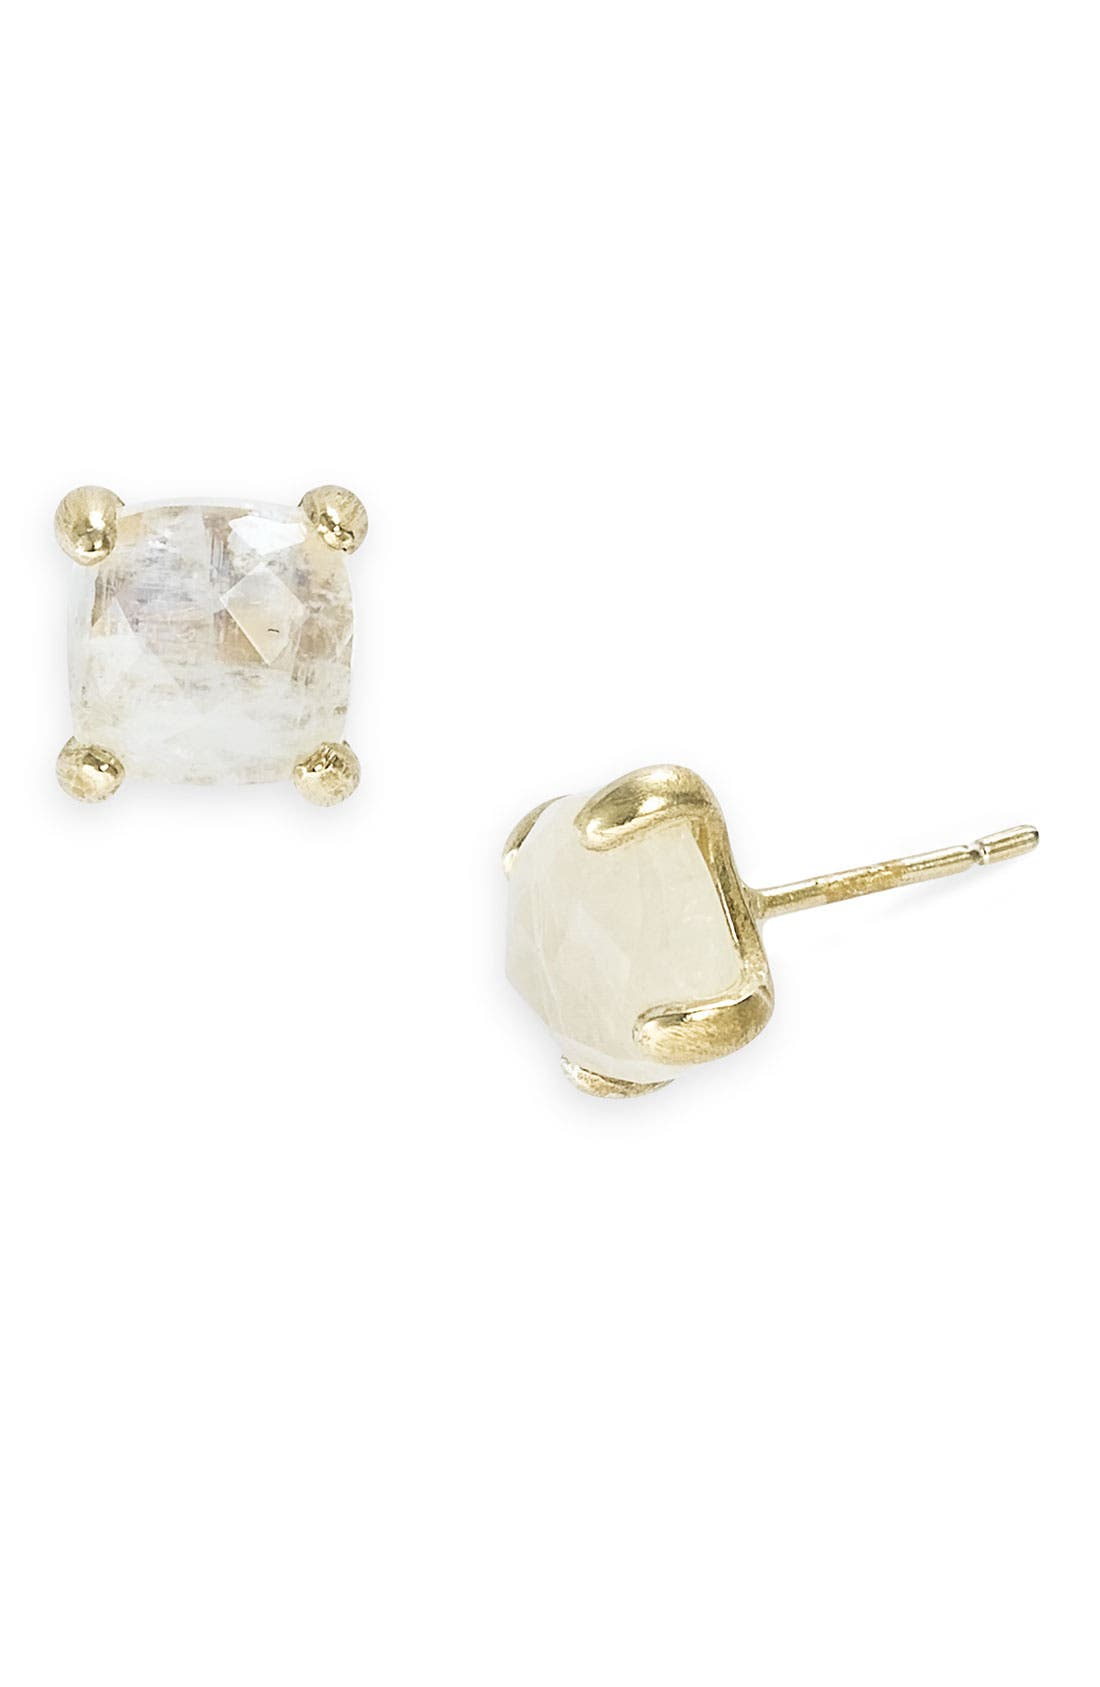 Alternate Image 1 Selected - NuNu Designs Square Semiprecious Stud Earrings